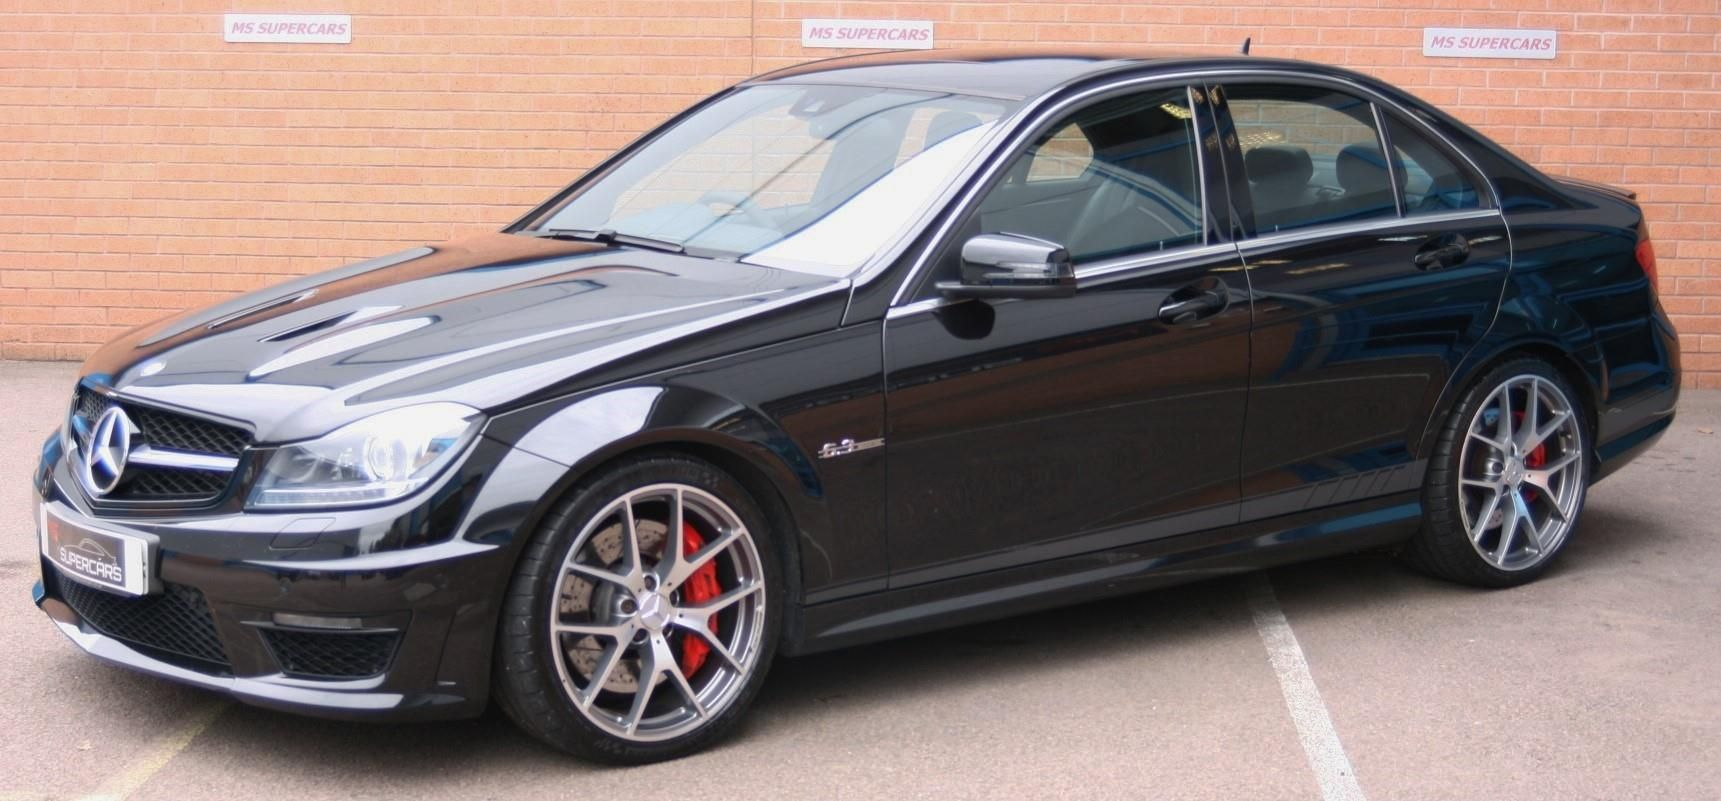 Used 2013 Mercedes Benz Amg C63 Amg Edition For Sale In Lincoln